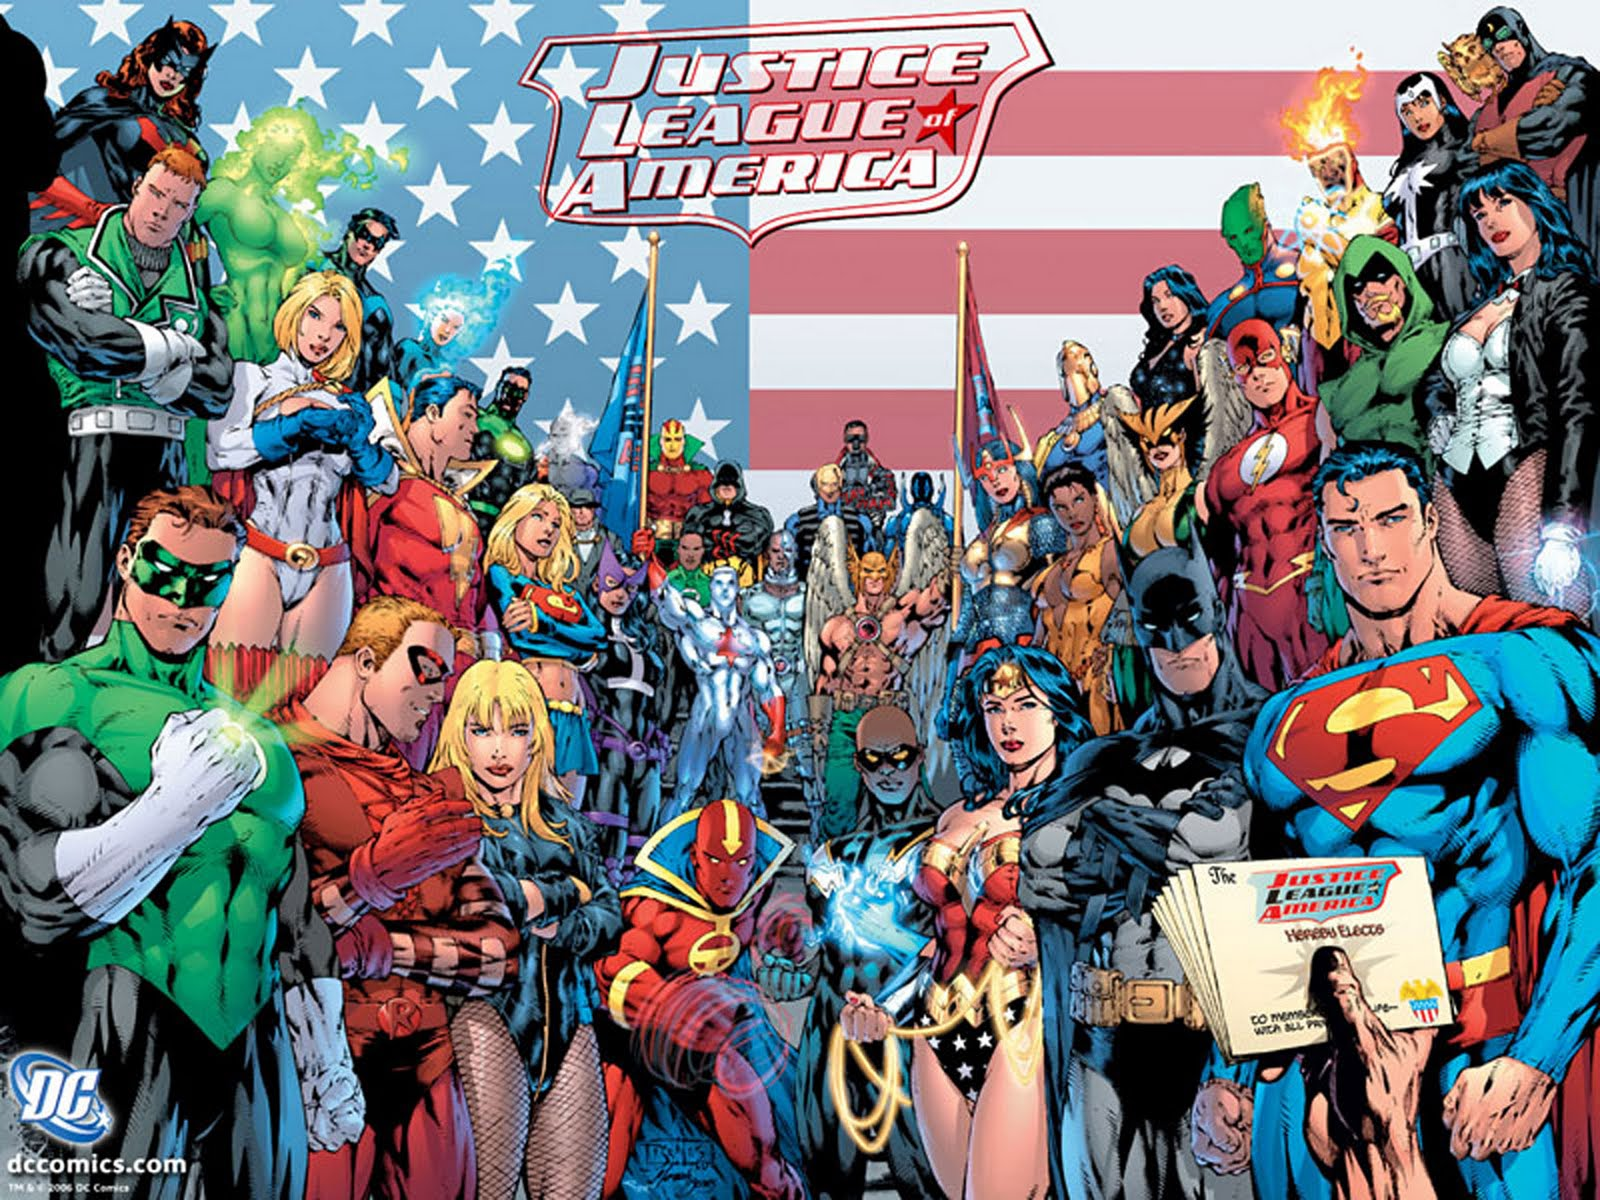 dc comics hd wallpapers | page 3 of 3 | wallpaper.wiki